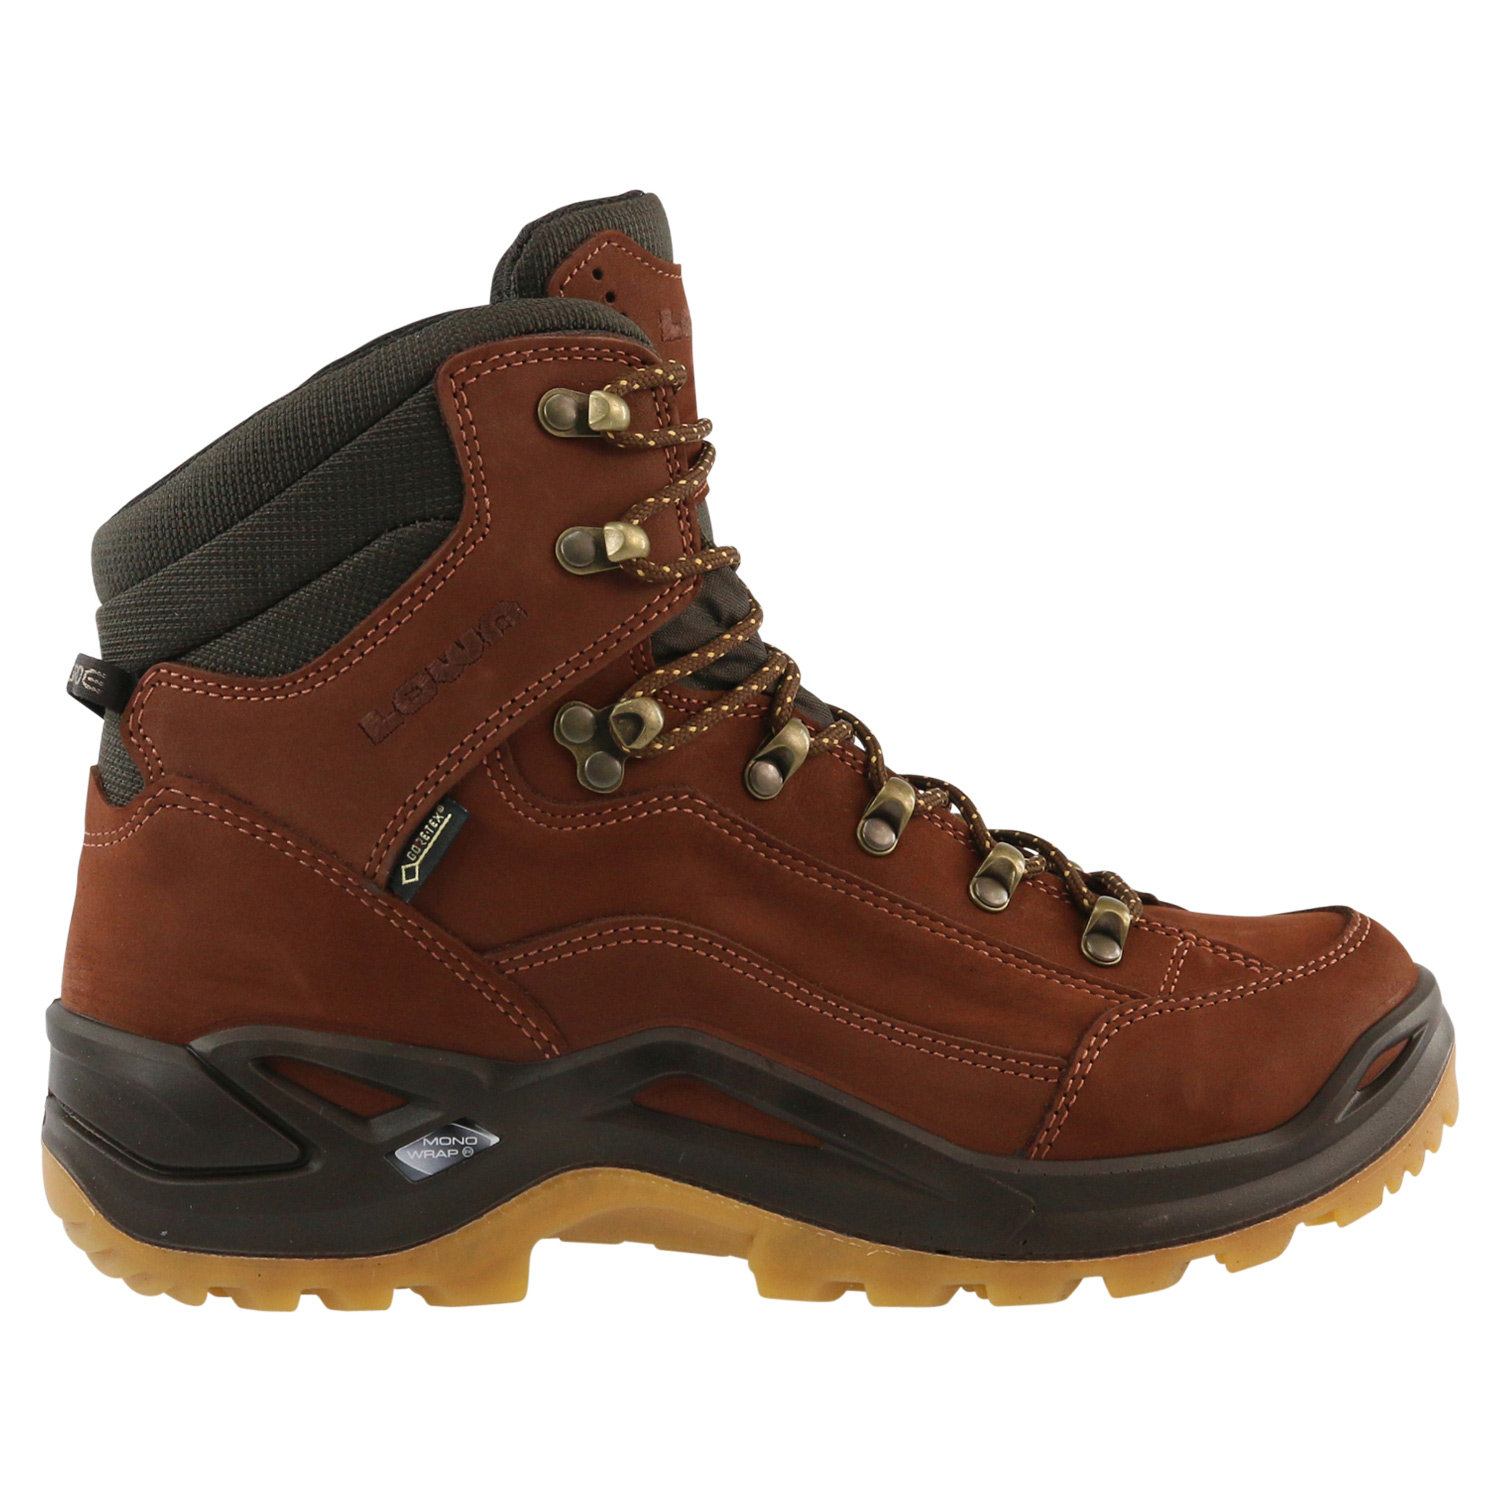 lowa renegade gtx gore tex mid stiefel boots wanderschuhe. Black Bedroom Furniture Sets. Home Design Ideas